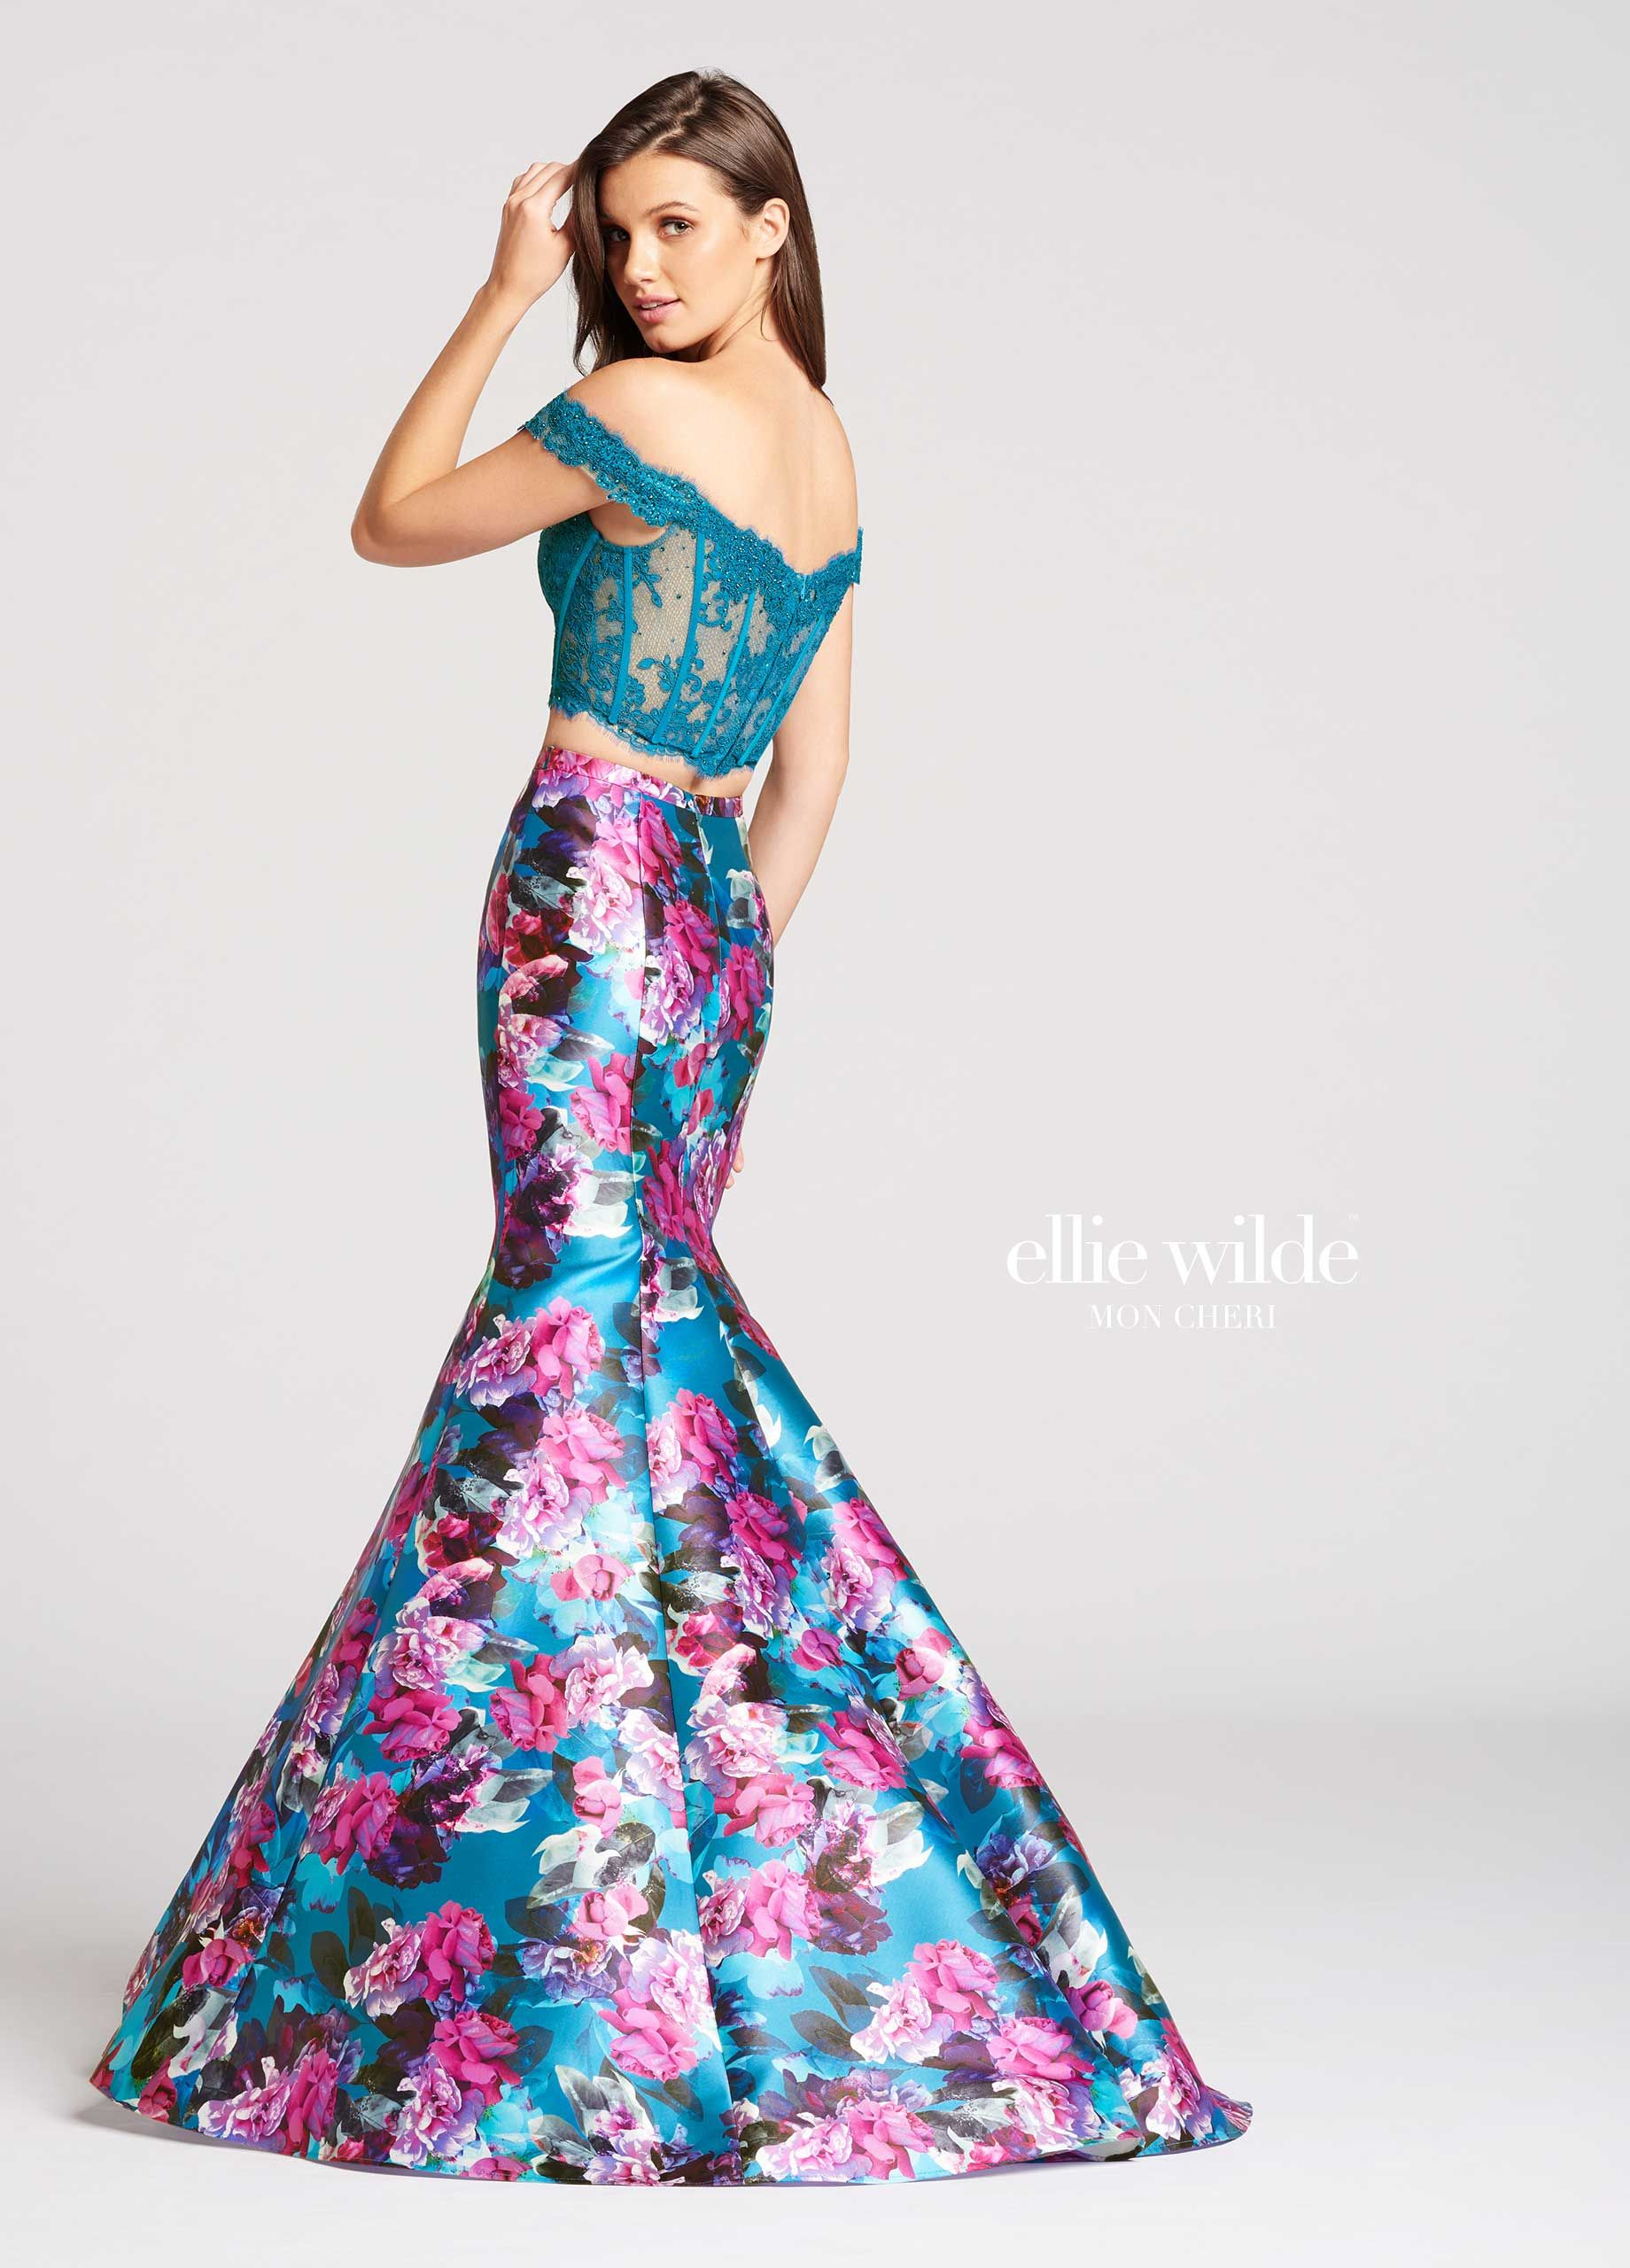 9d7d71572d3 Ellie Wilde EW118009 - Two-piece lace and printed Mikado mermaid prom dress.  Lace sweetheart top features off the shoulder cap sleeves and visible  boning.